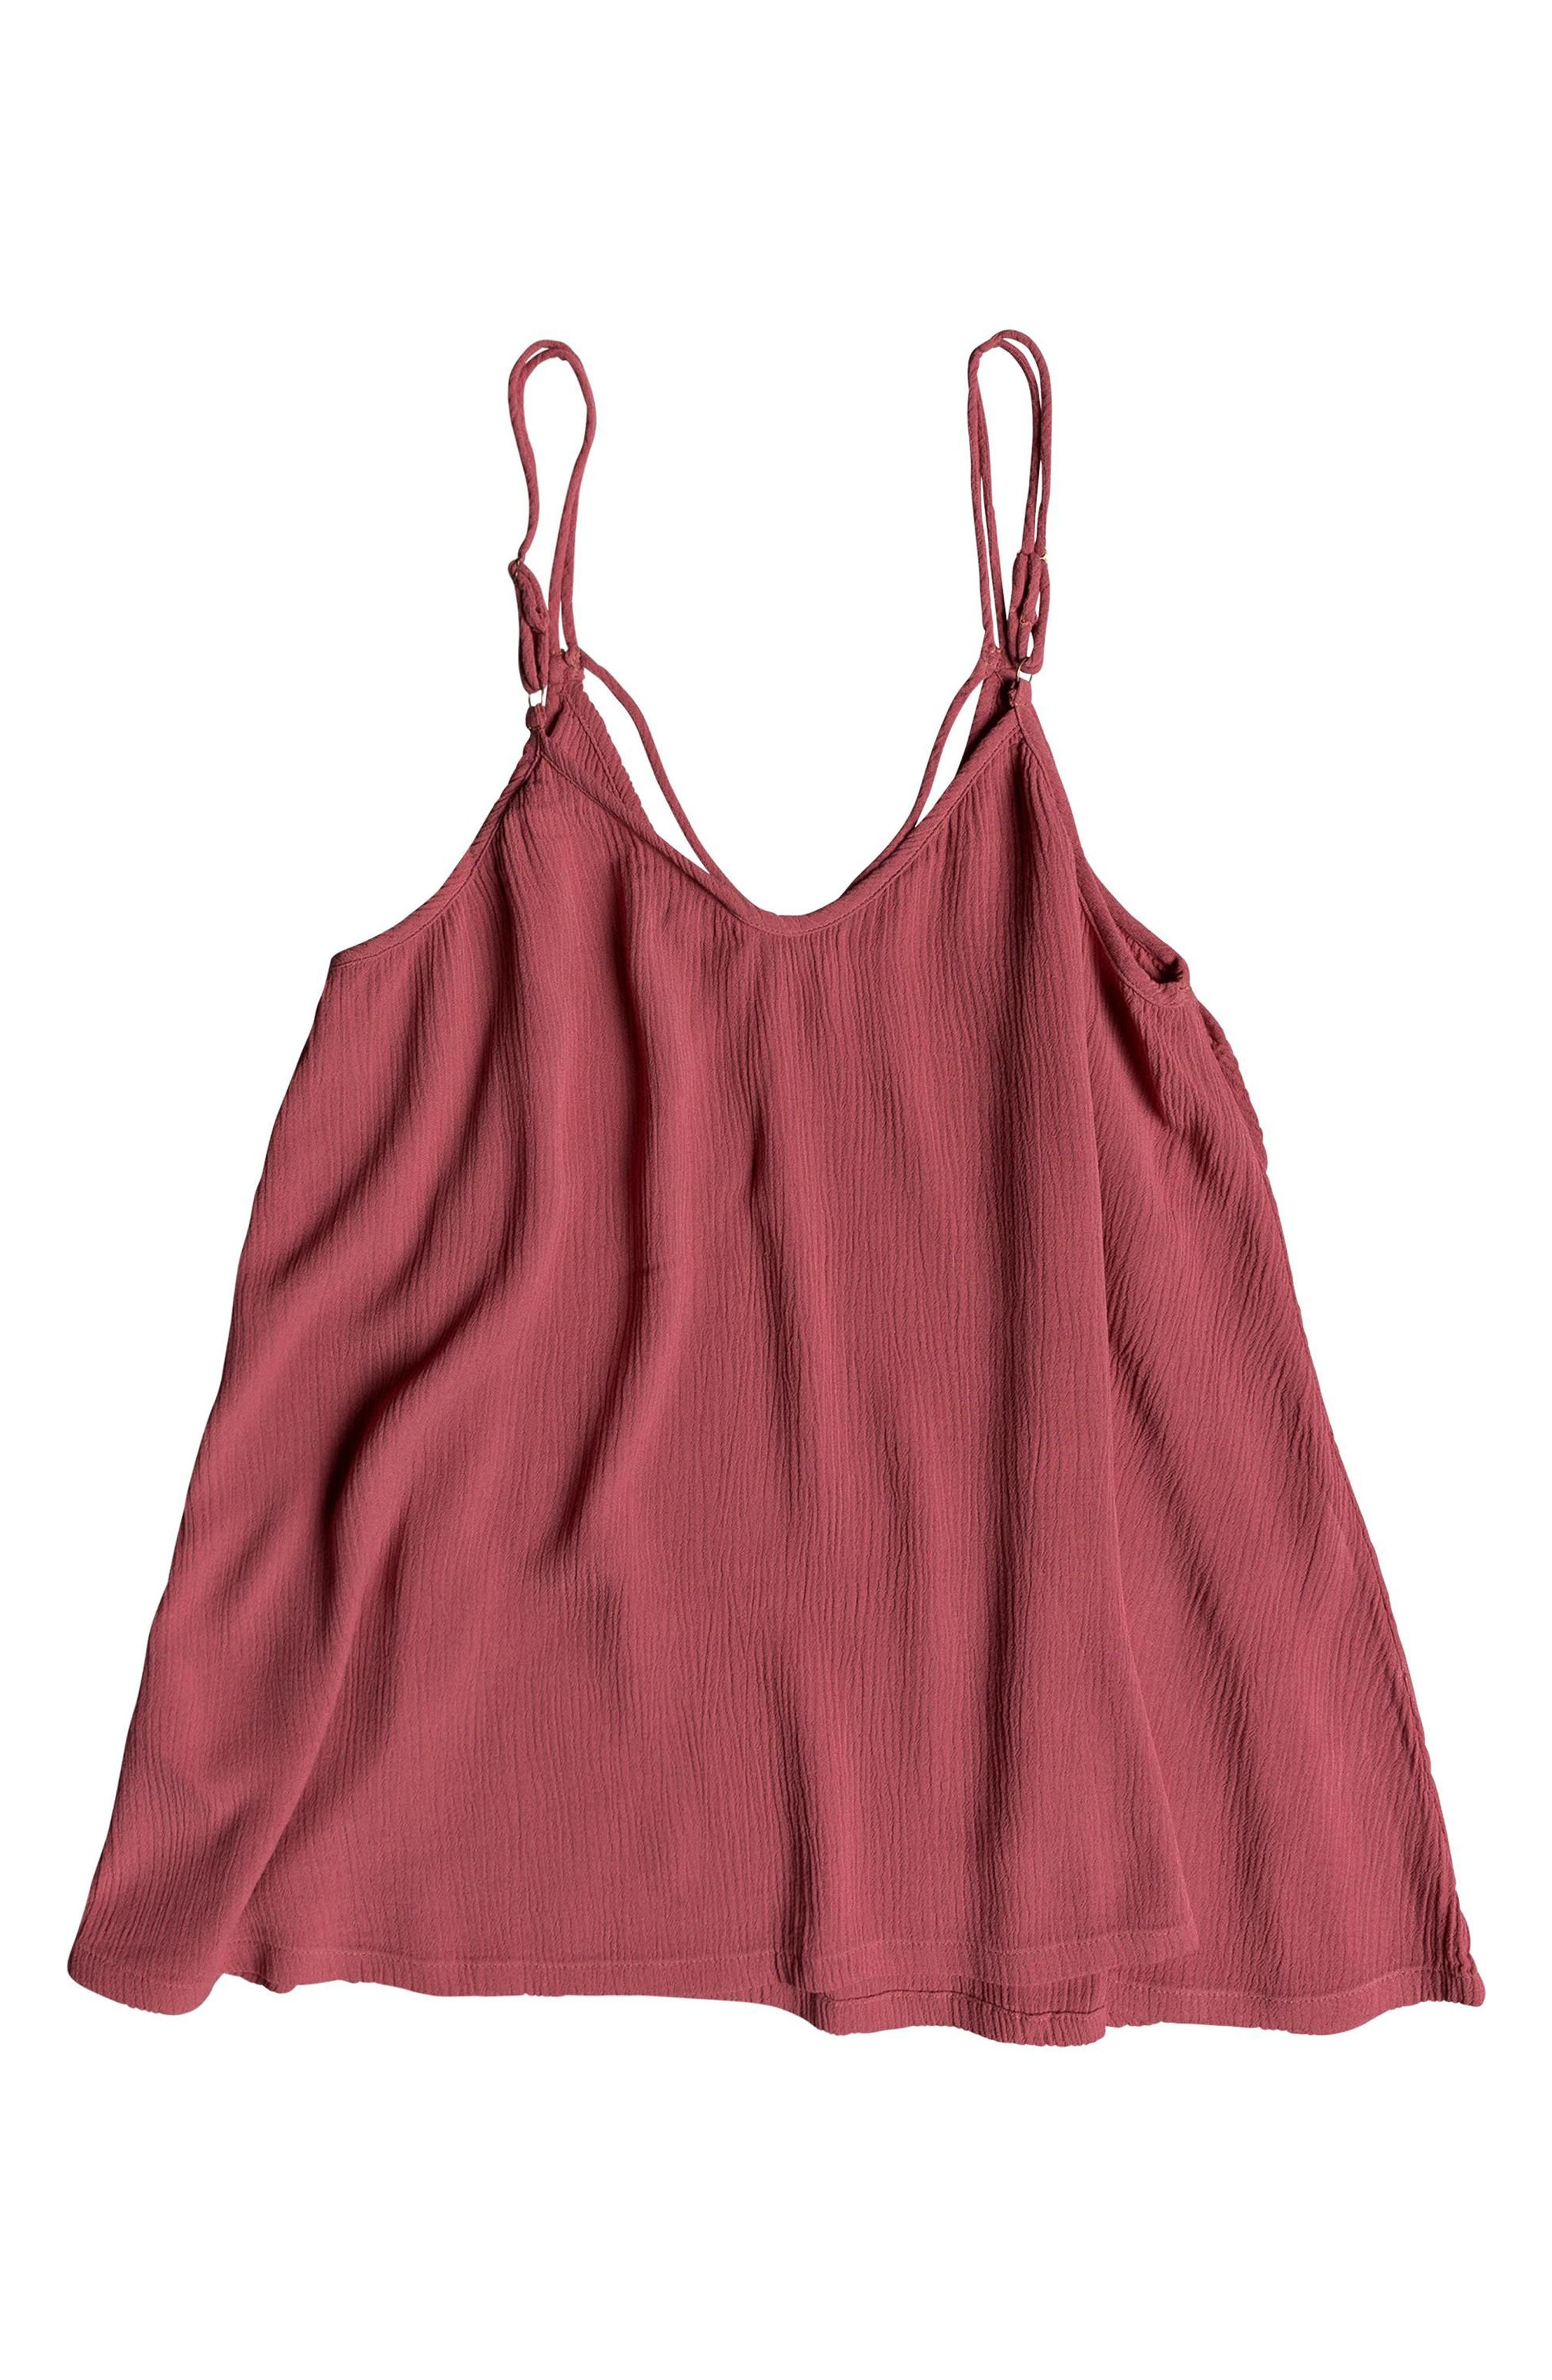 Final Days Tank Top,                             Alternate thumbnail 4, color,                             HOLLY BERRY